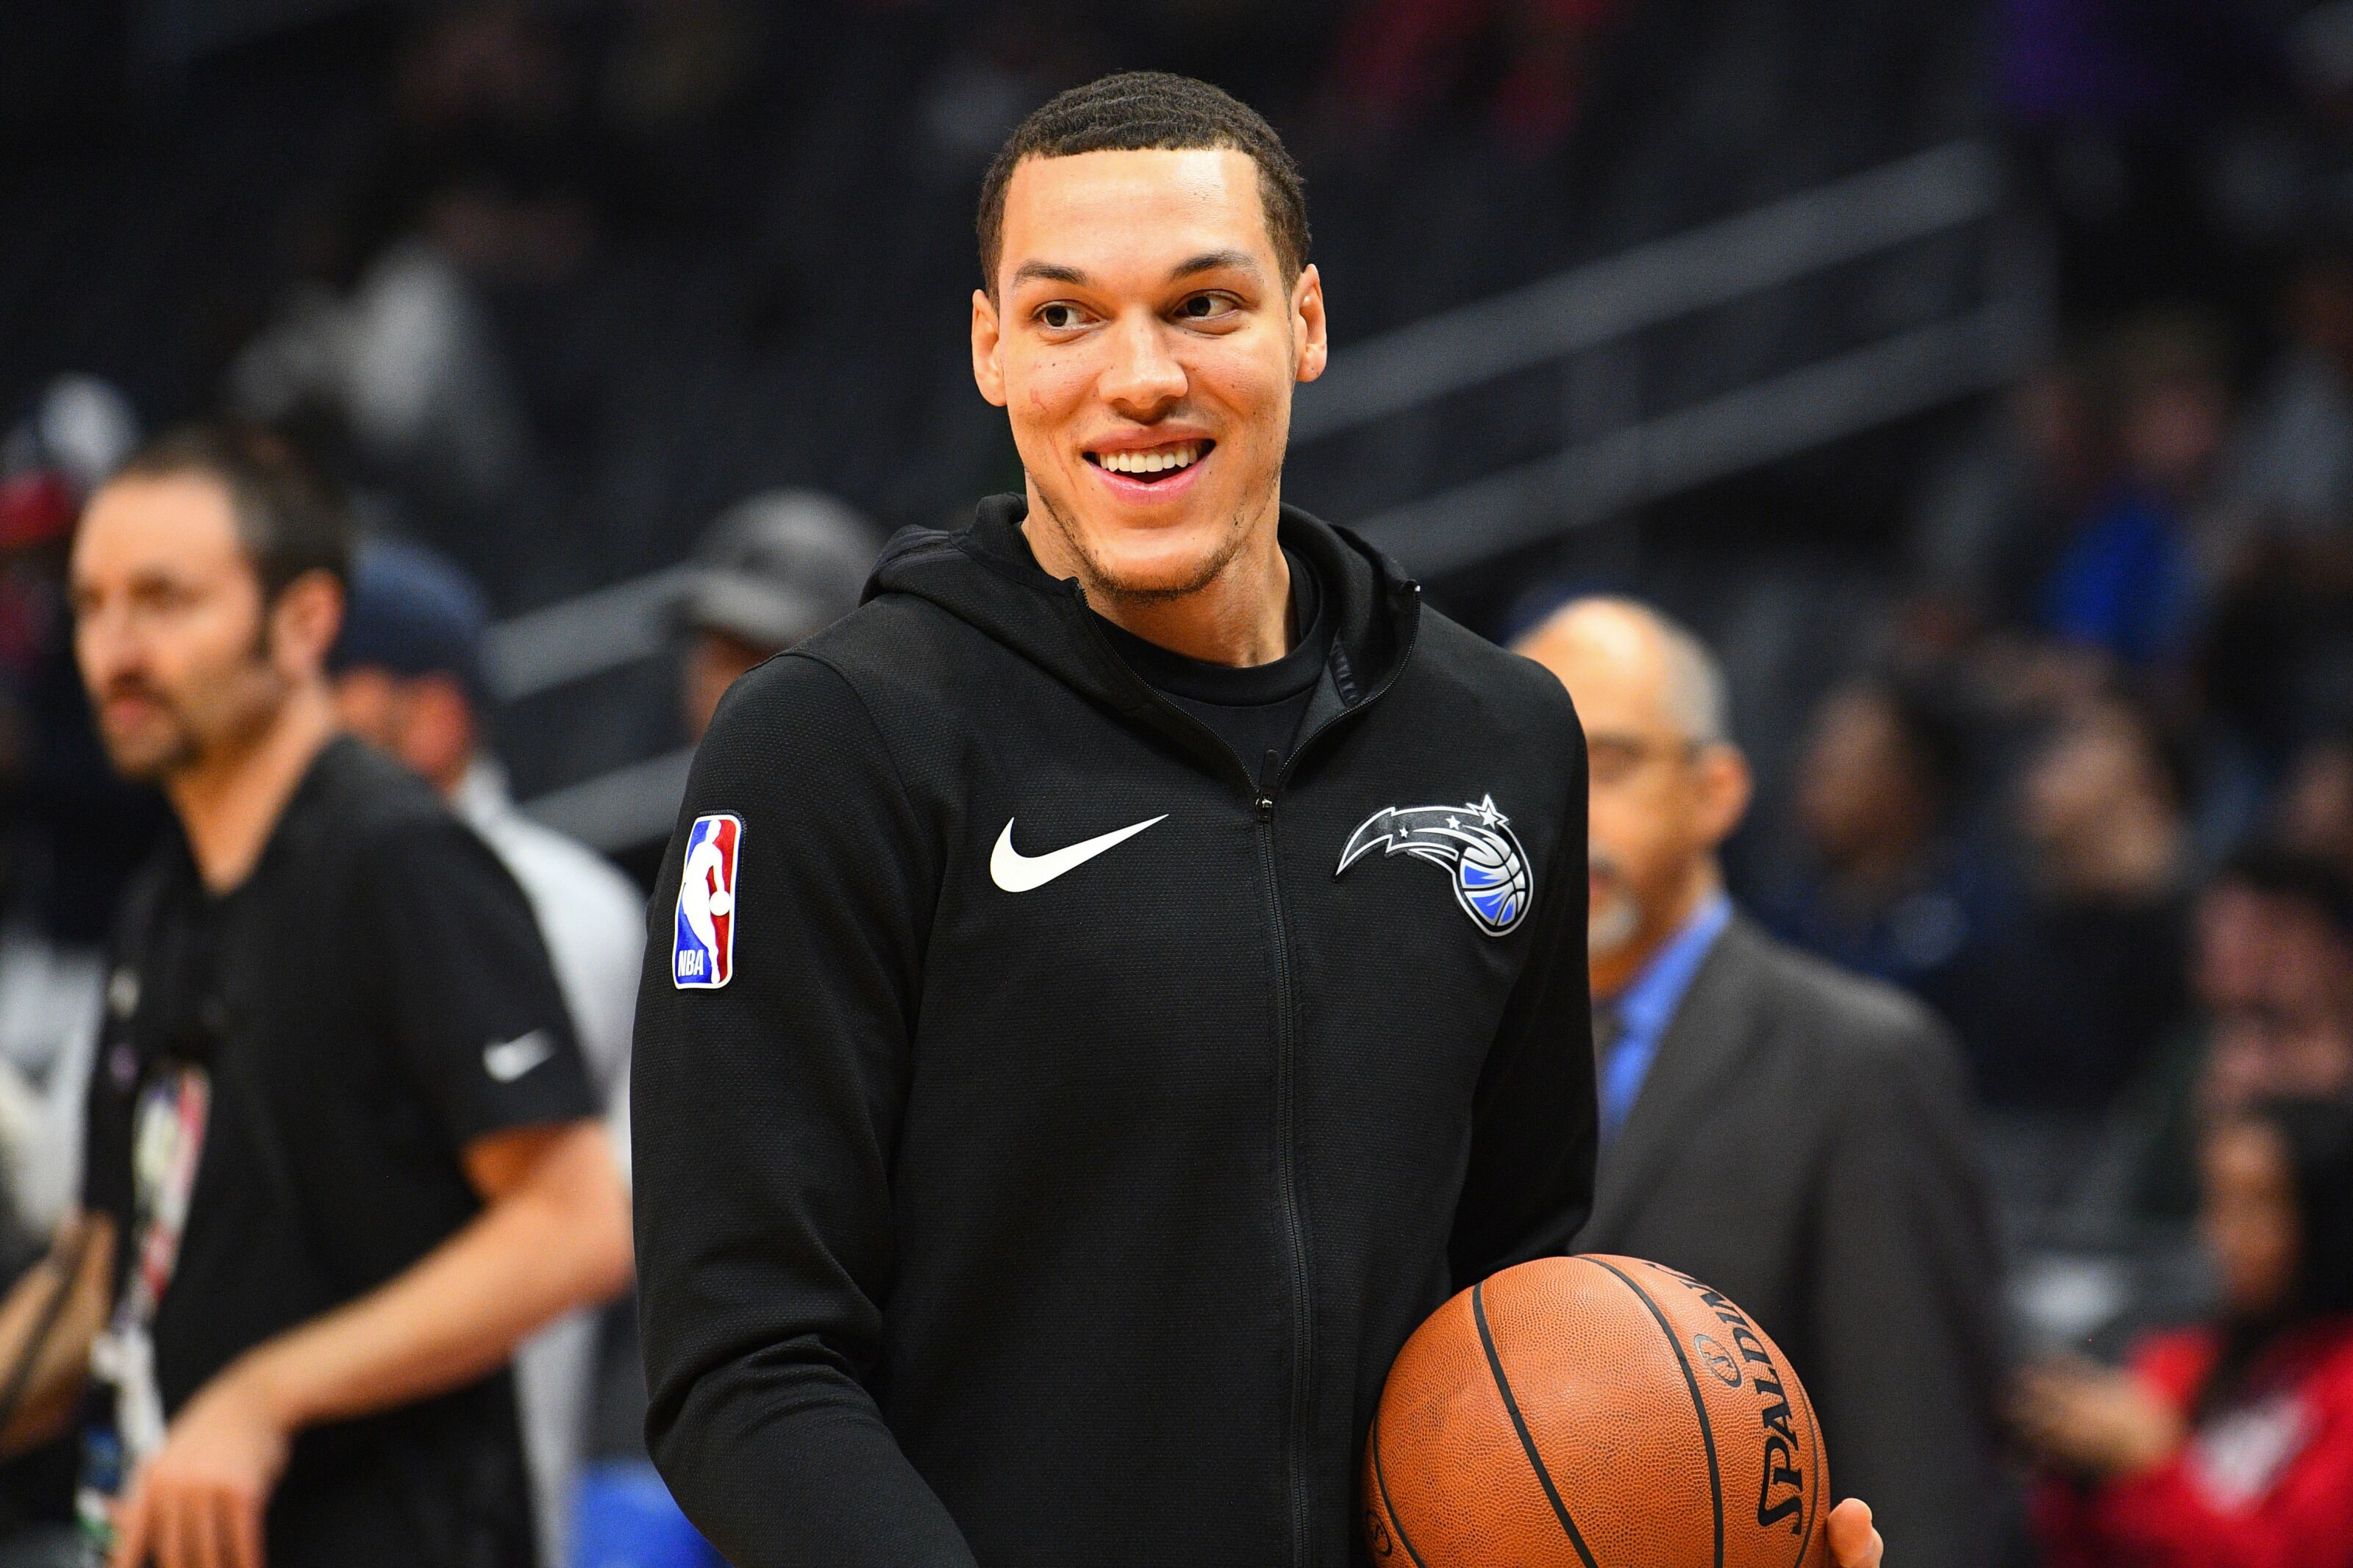 Aaron Gordon has to become an All-Star for Orlando Magic to make their leap